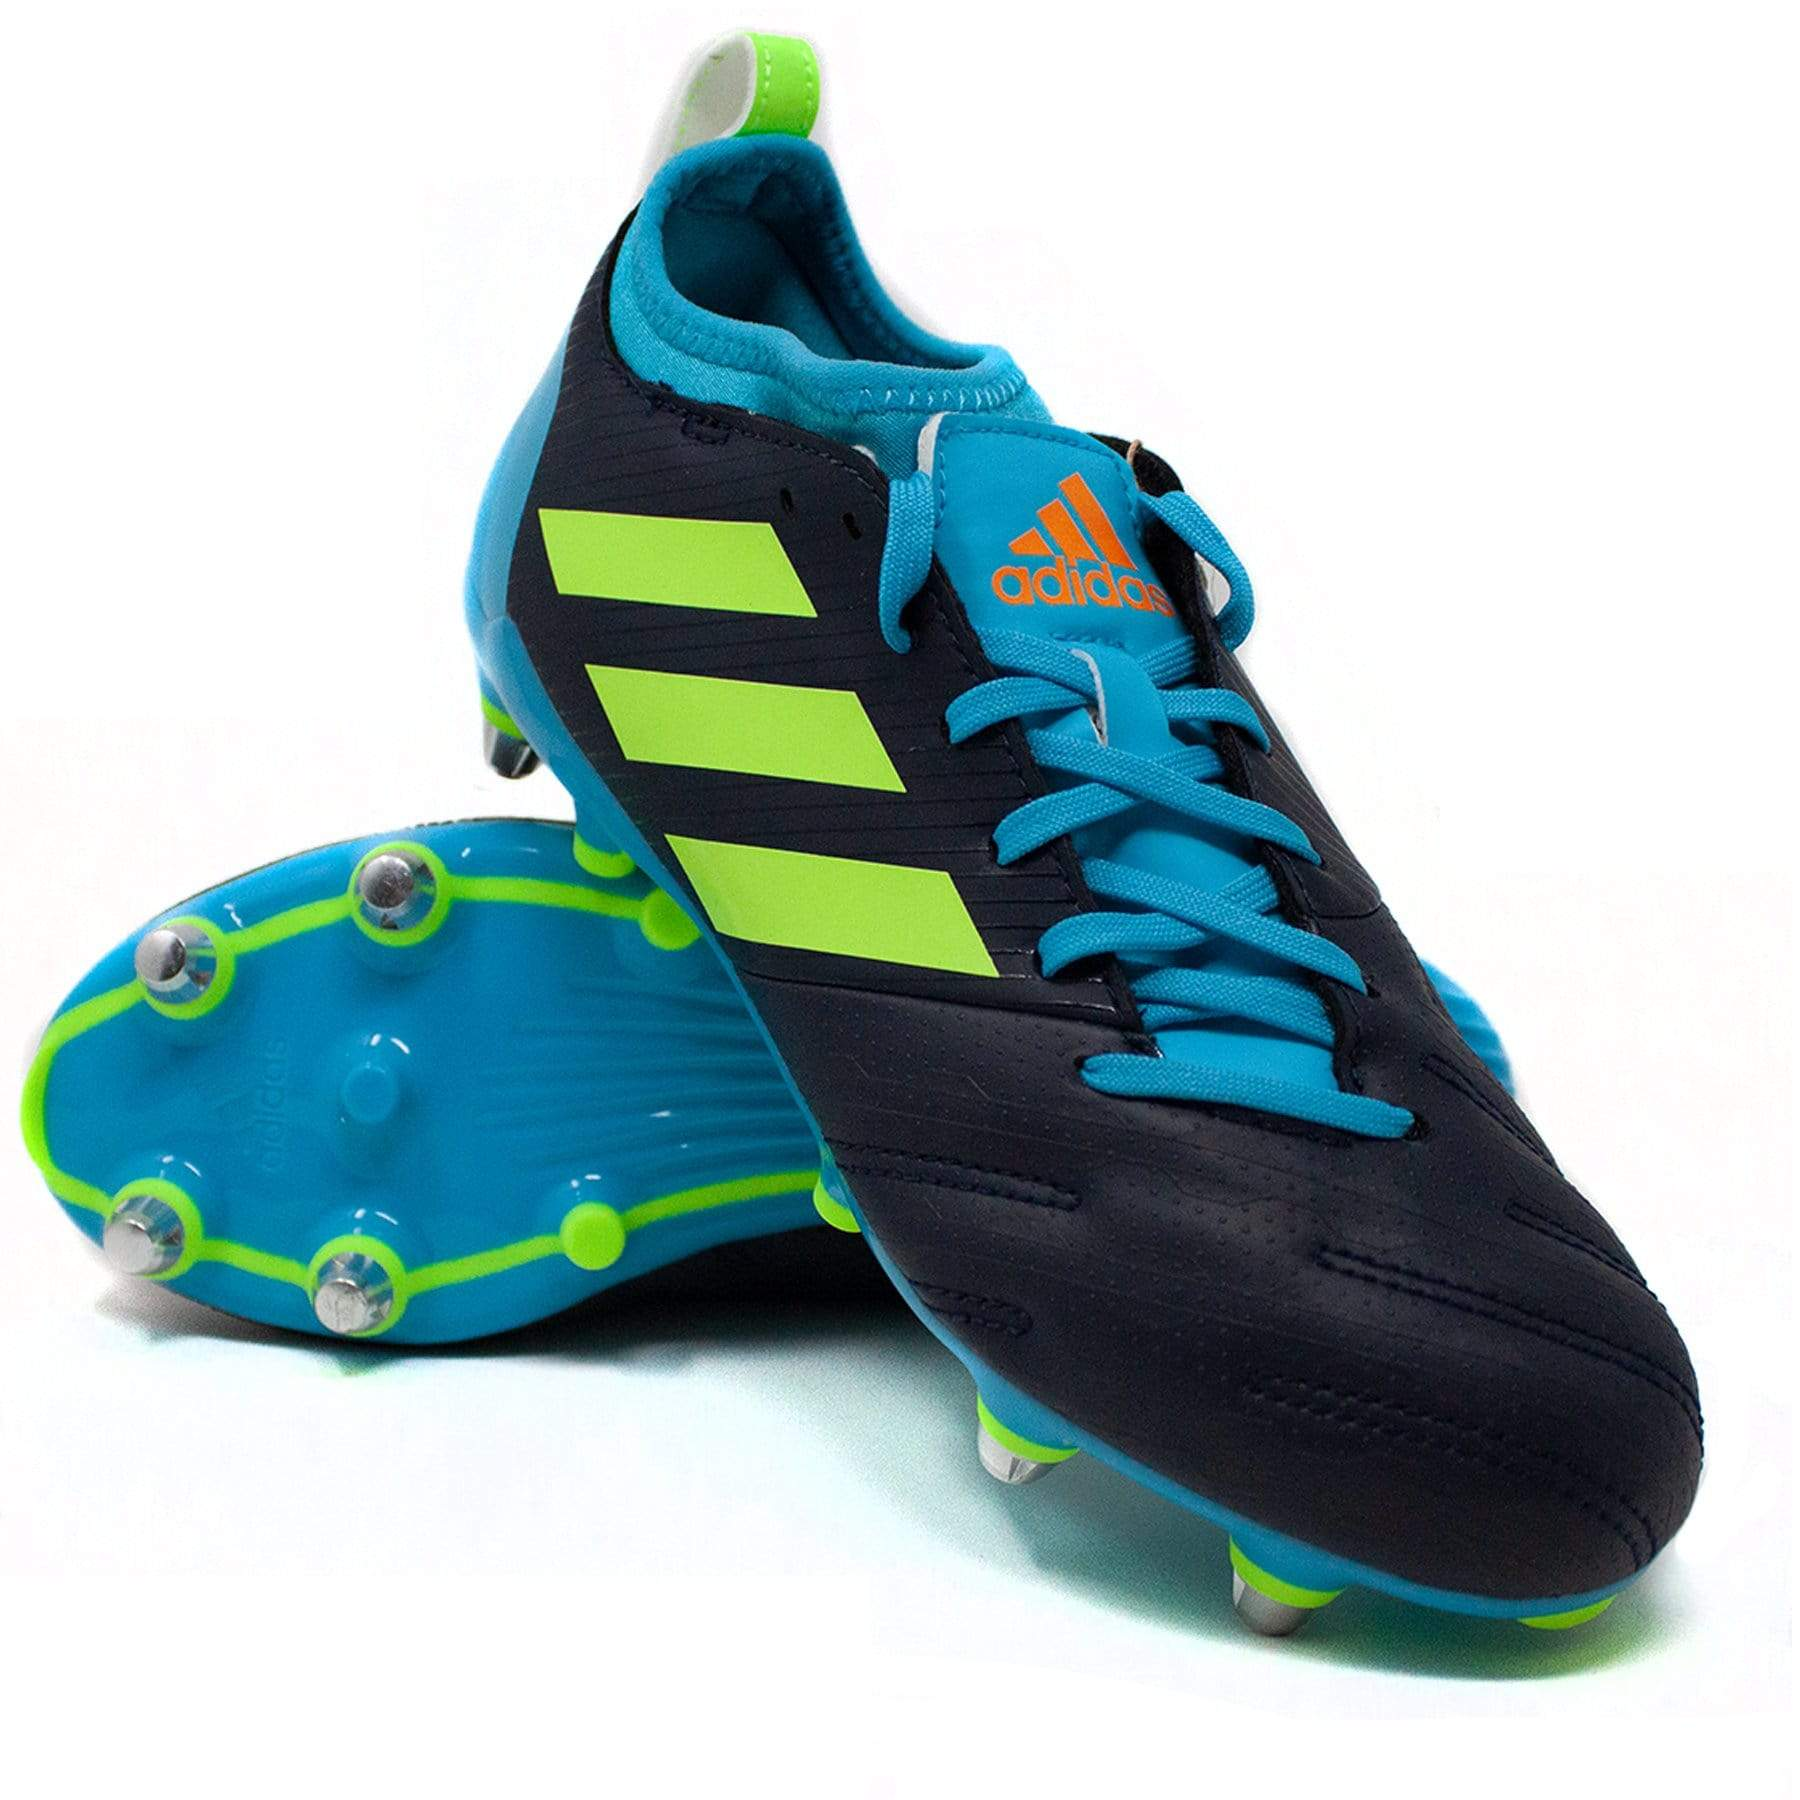 adidas 21 Malice Elite (SG) Rugby Boots